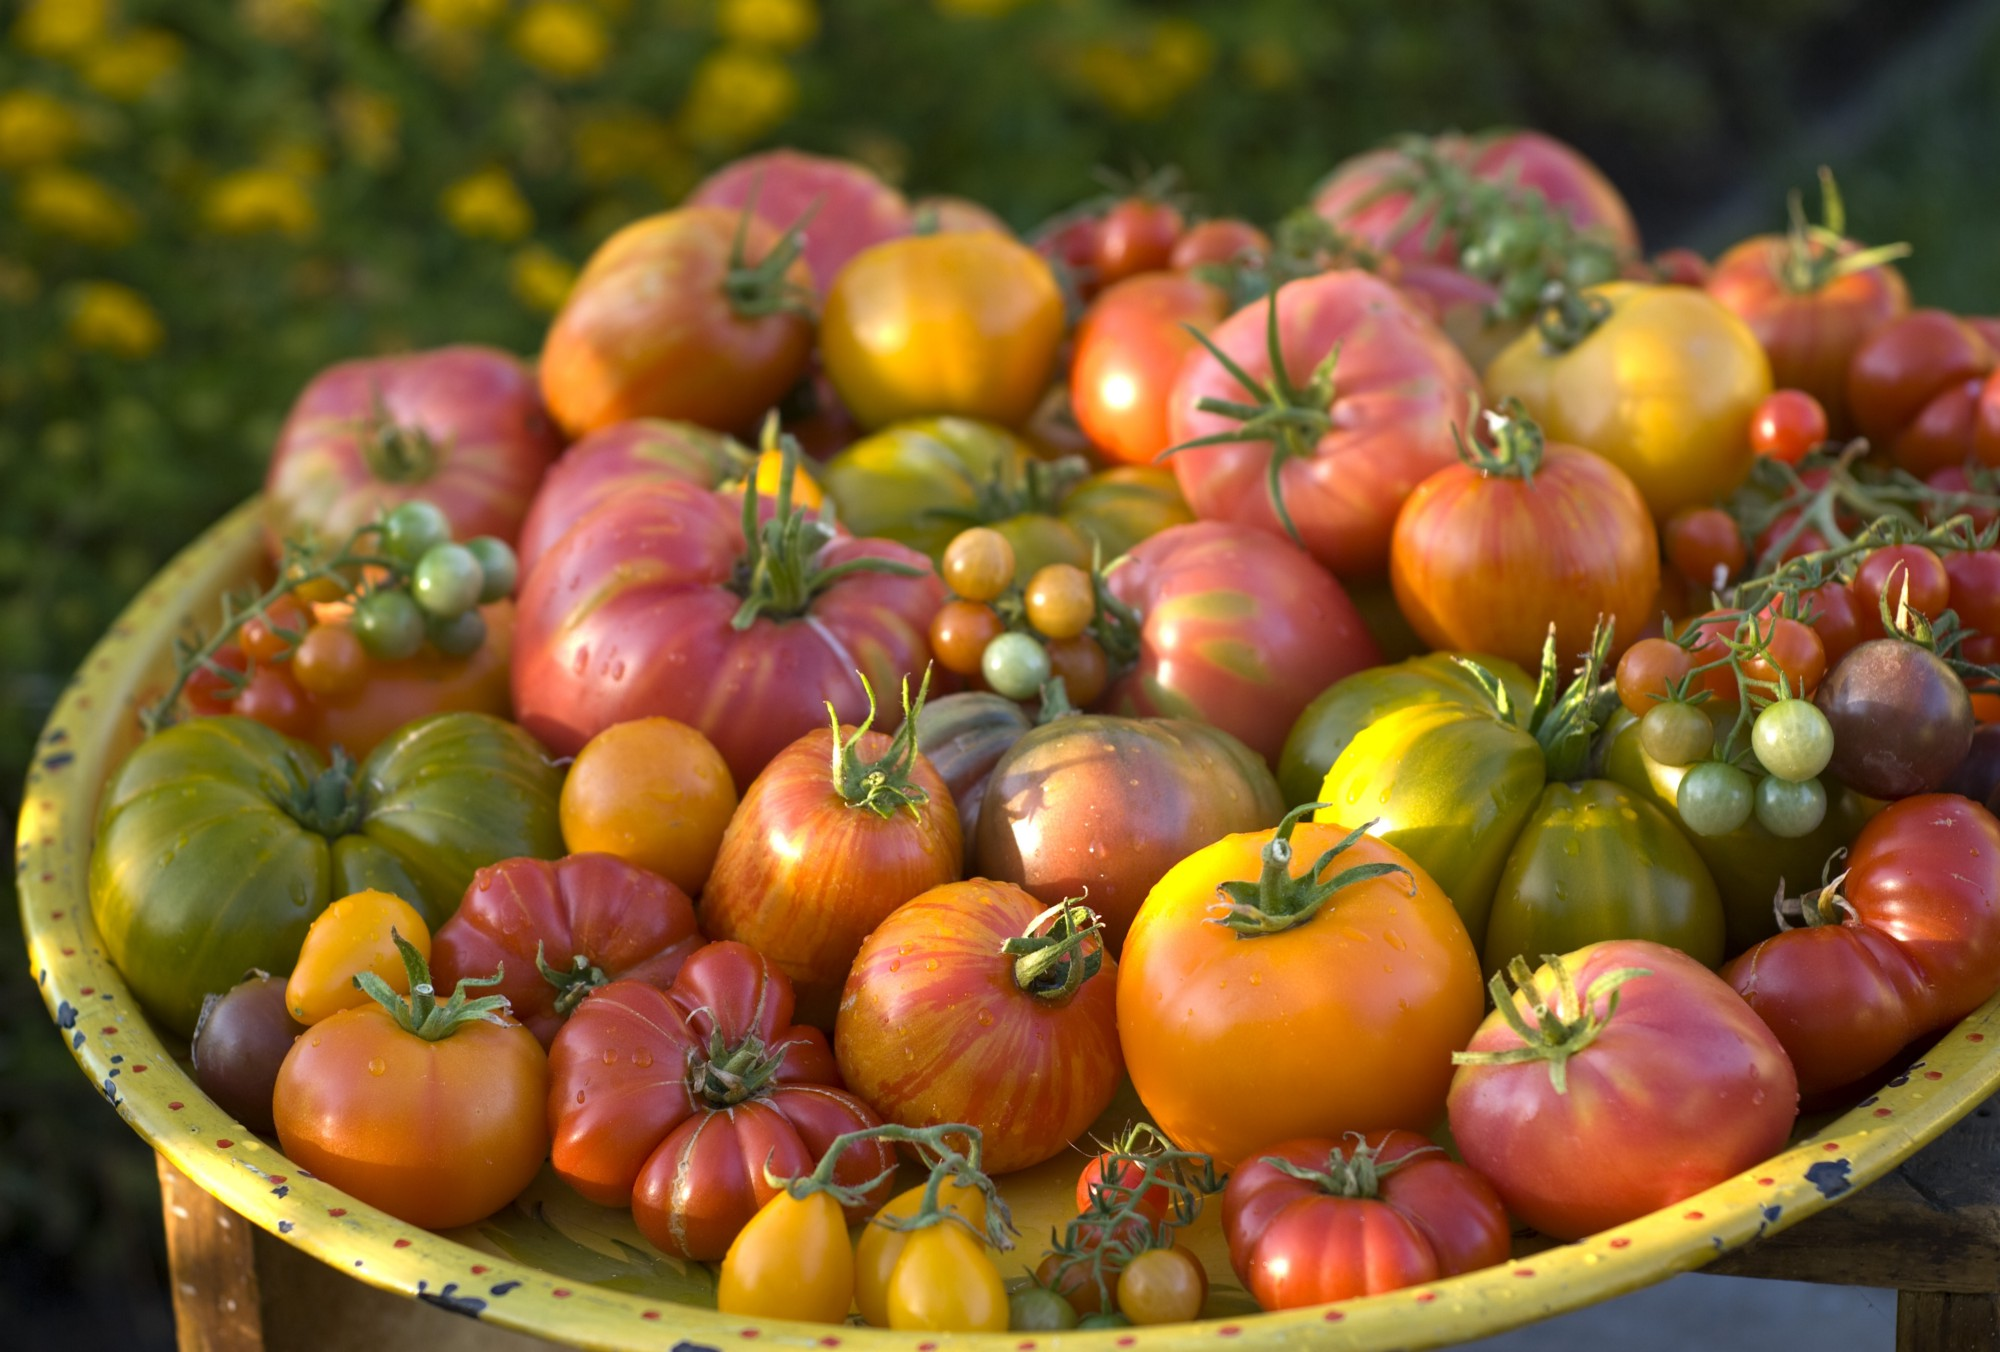 A large basket overflowing with heirloom tomatoes of various sizes and colors.